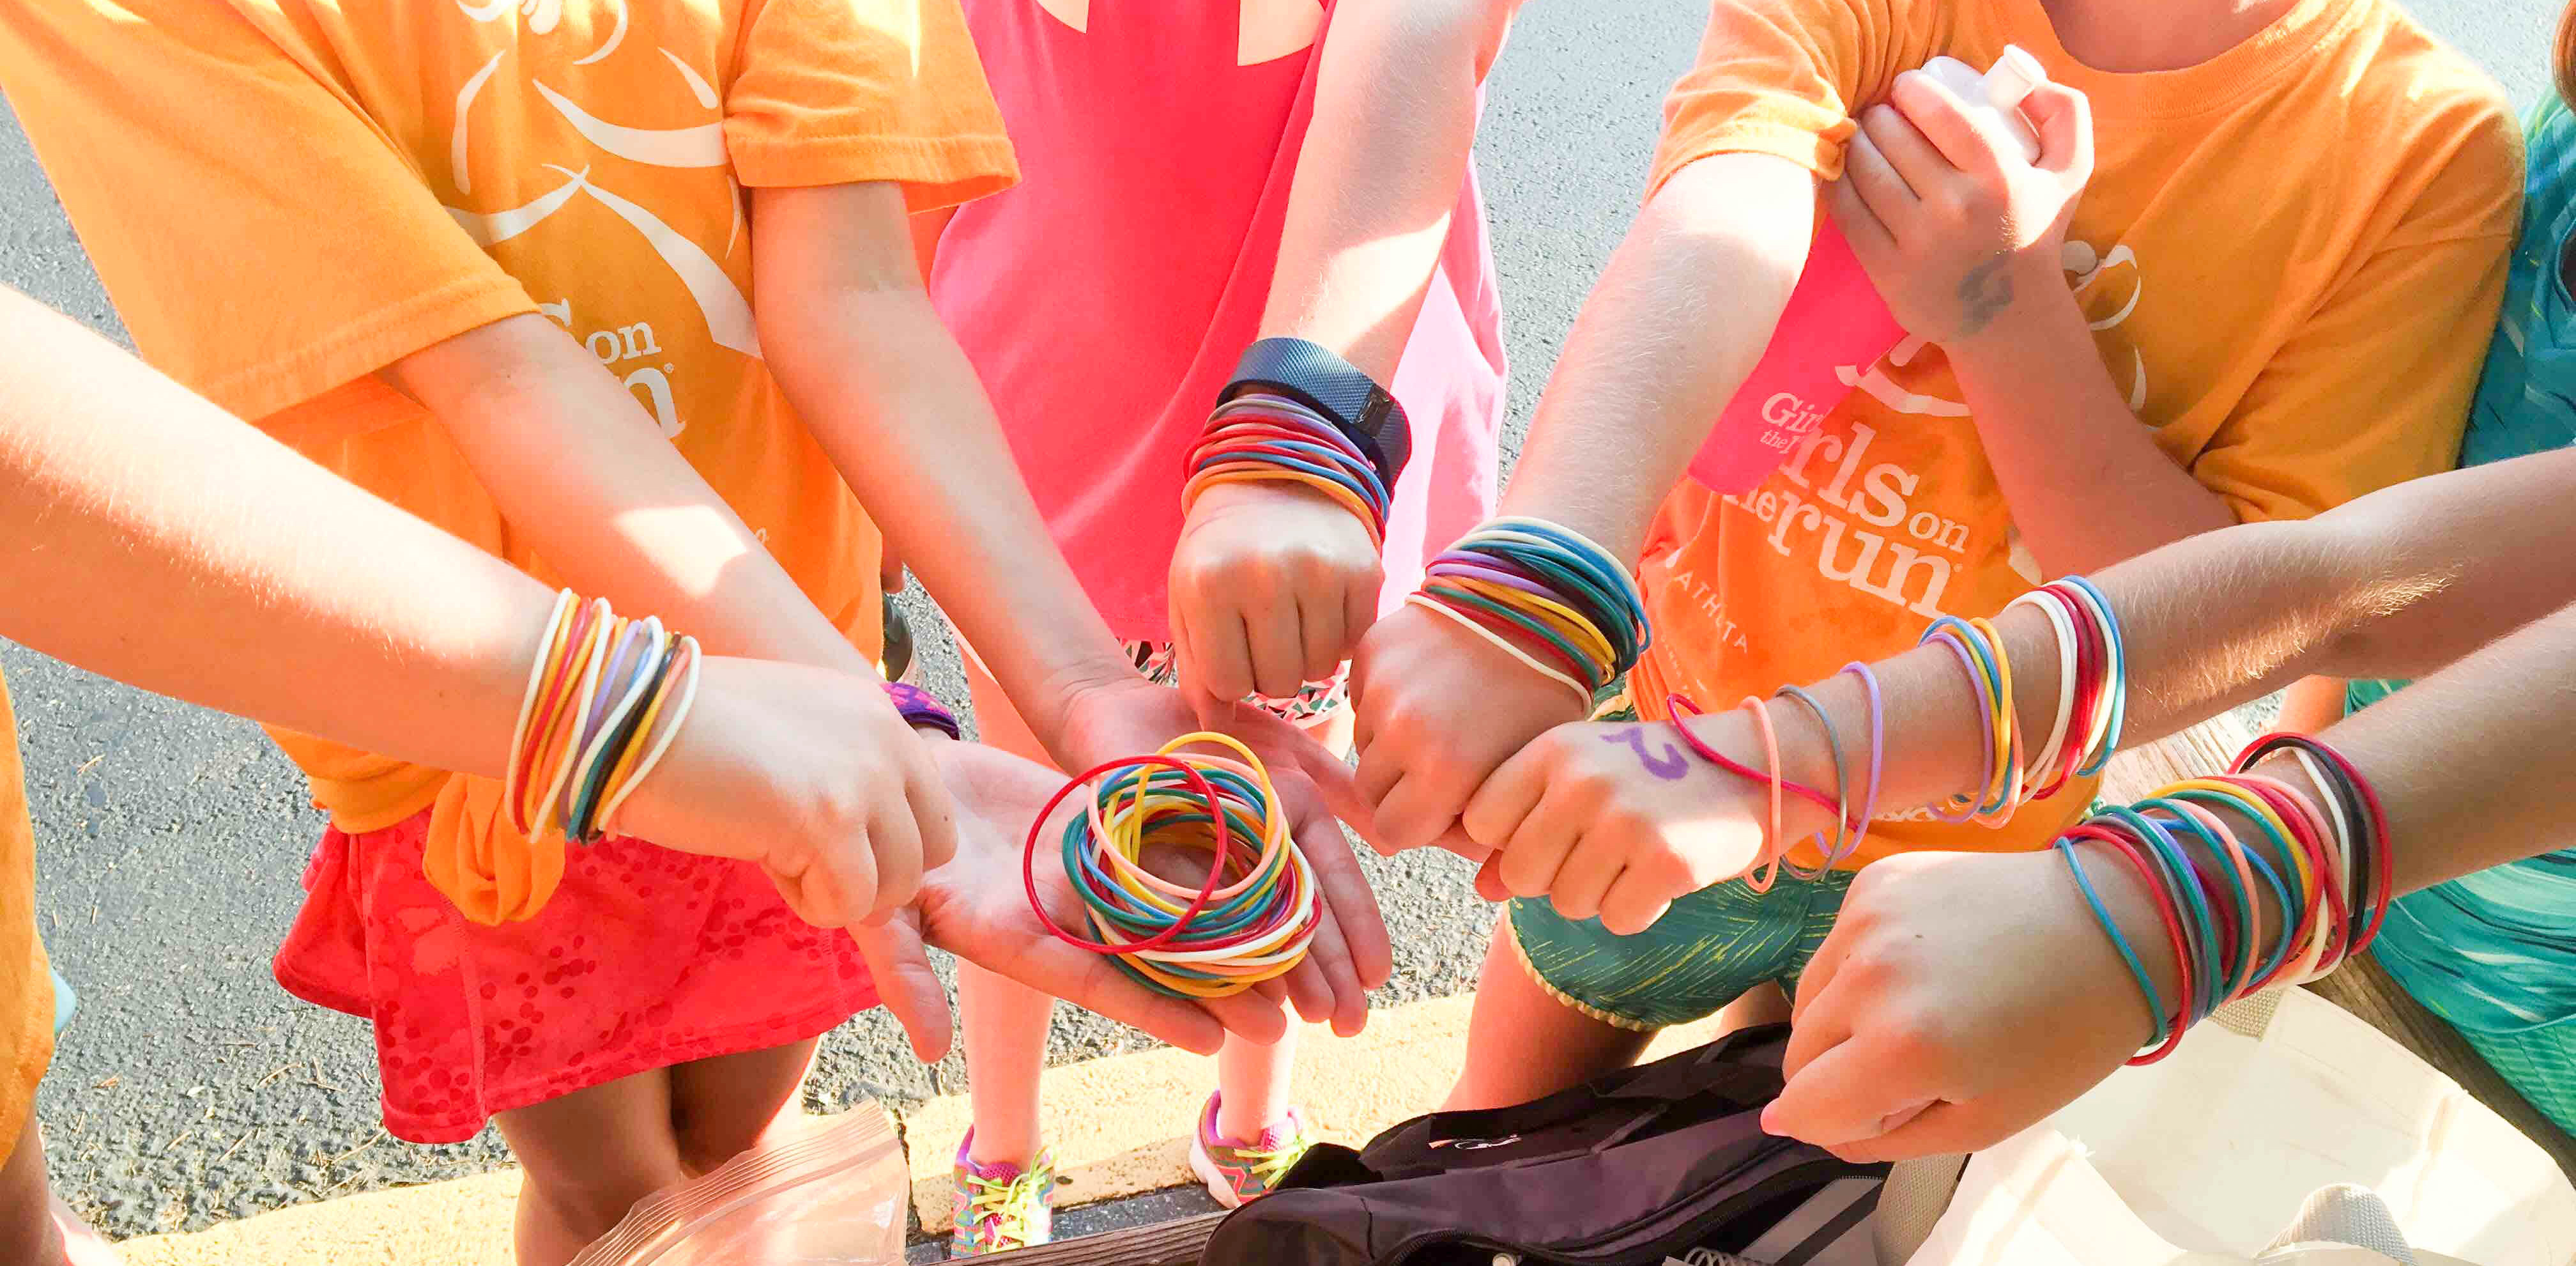 Girls on the Run girls wearing jelly bracelets and putting their hands together